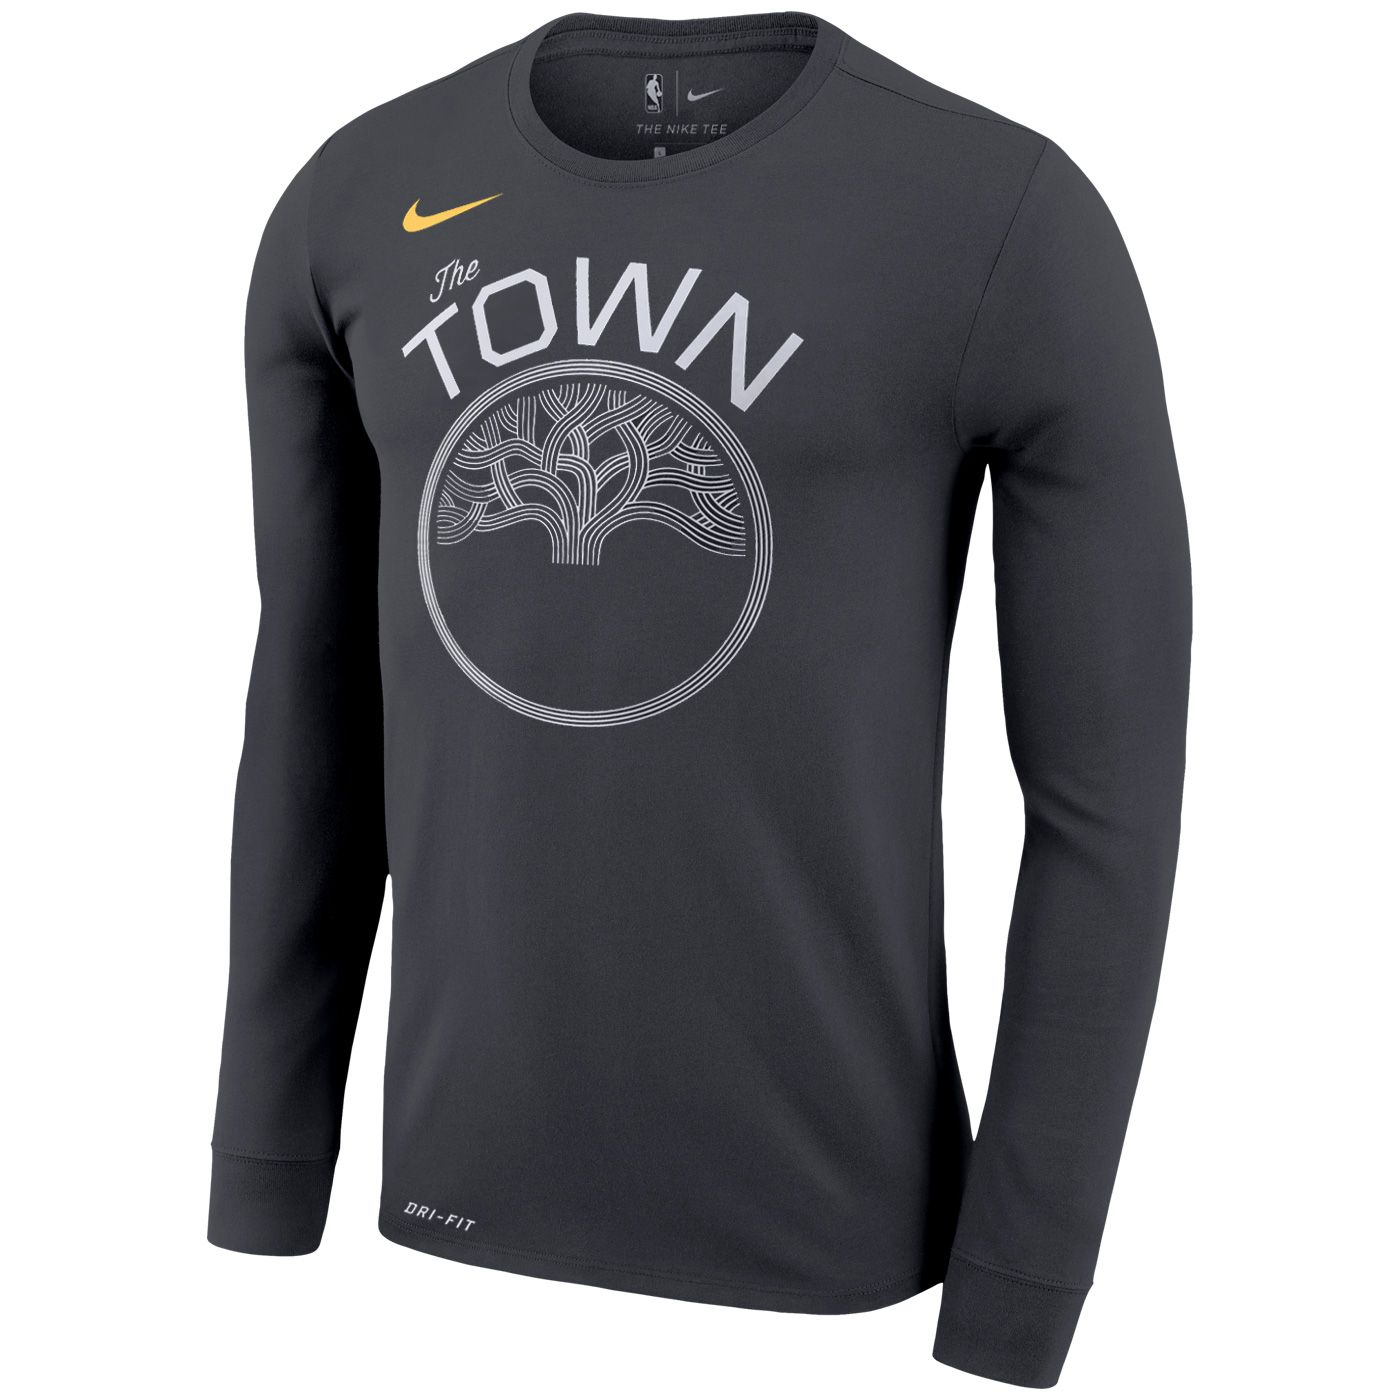 7733a4c1933 Golden State Warriors Nike Dri-FIT Men s  The Town  Legend Long Sleeve Tee  - Anthracite